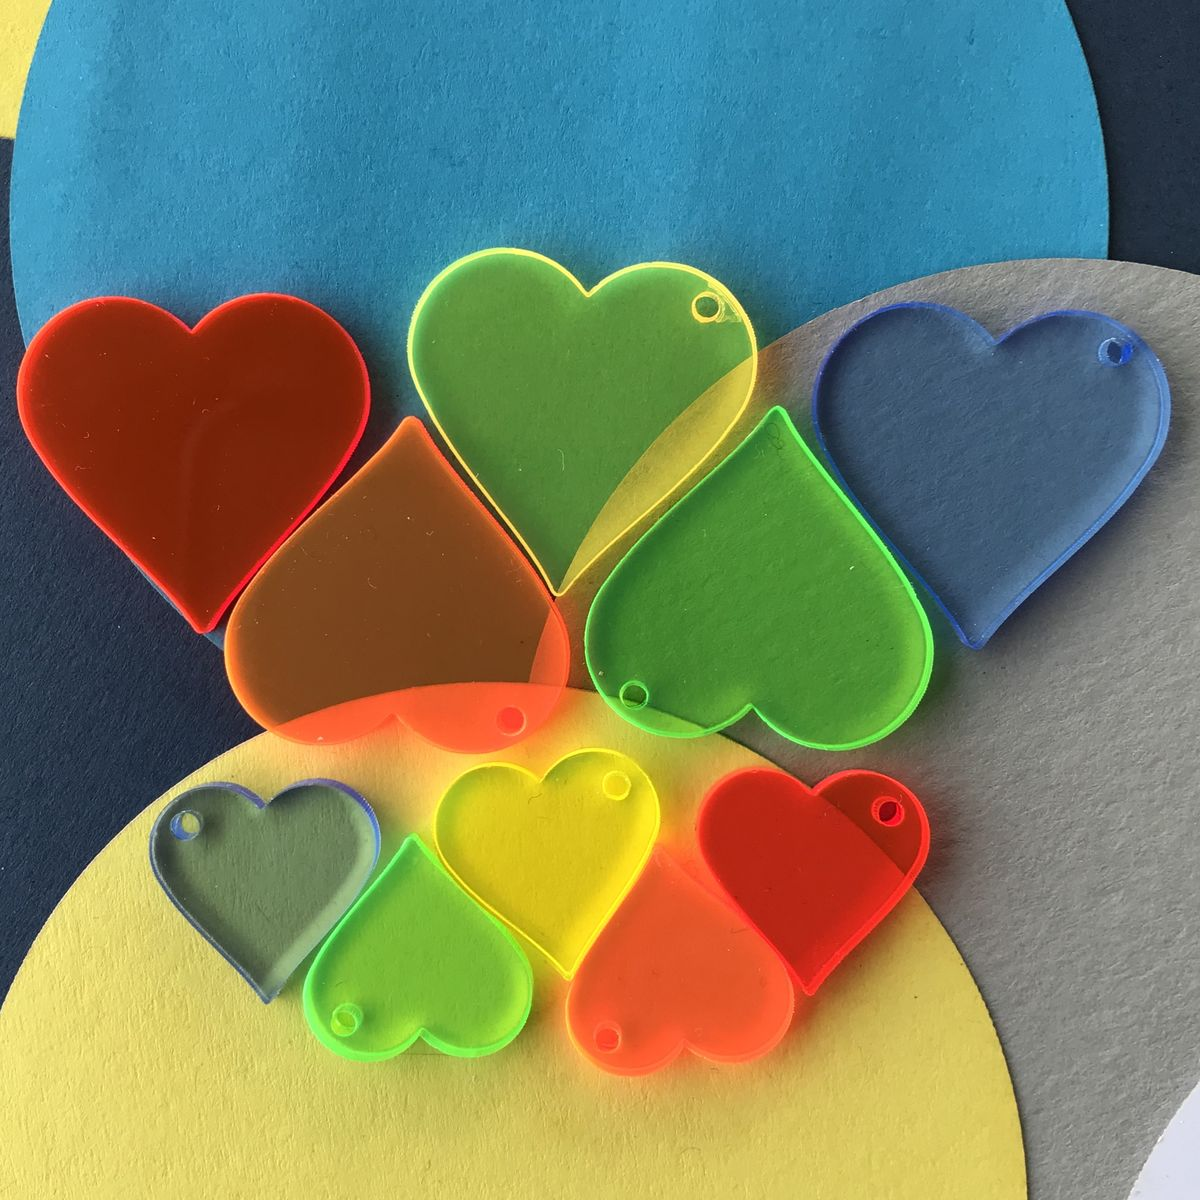 Mixed Neon Heart Charm Pack of 10 for Jewellery Making - product images  of